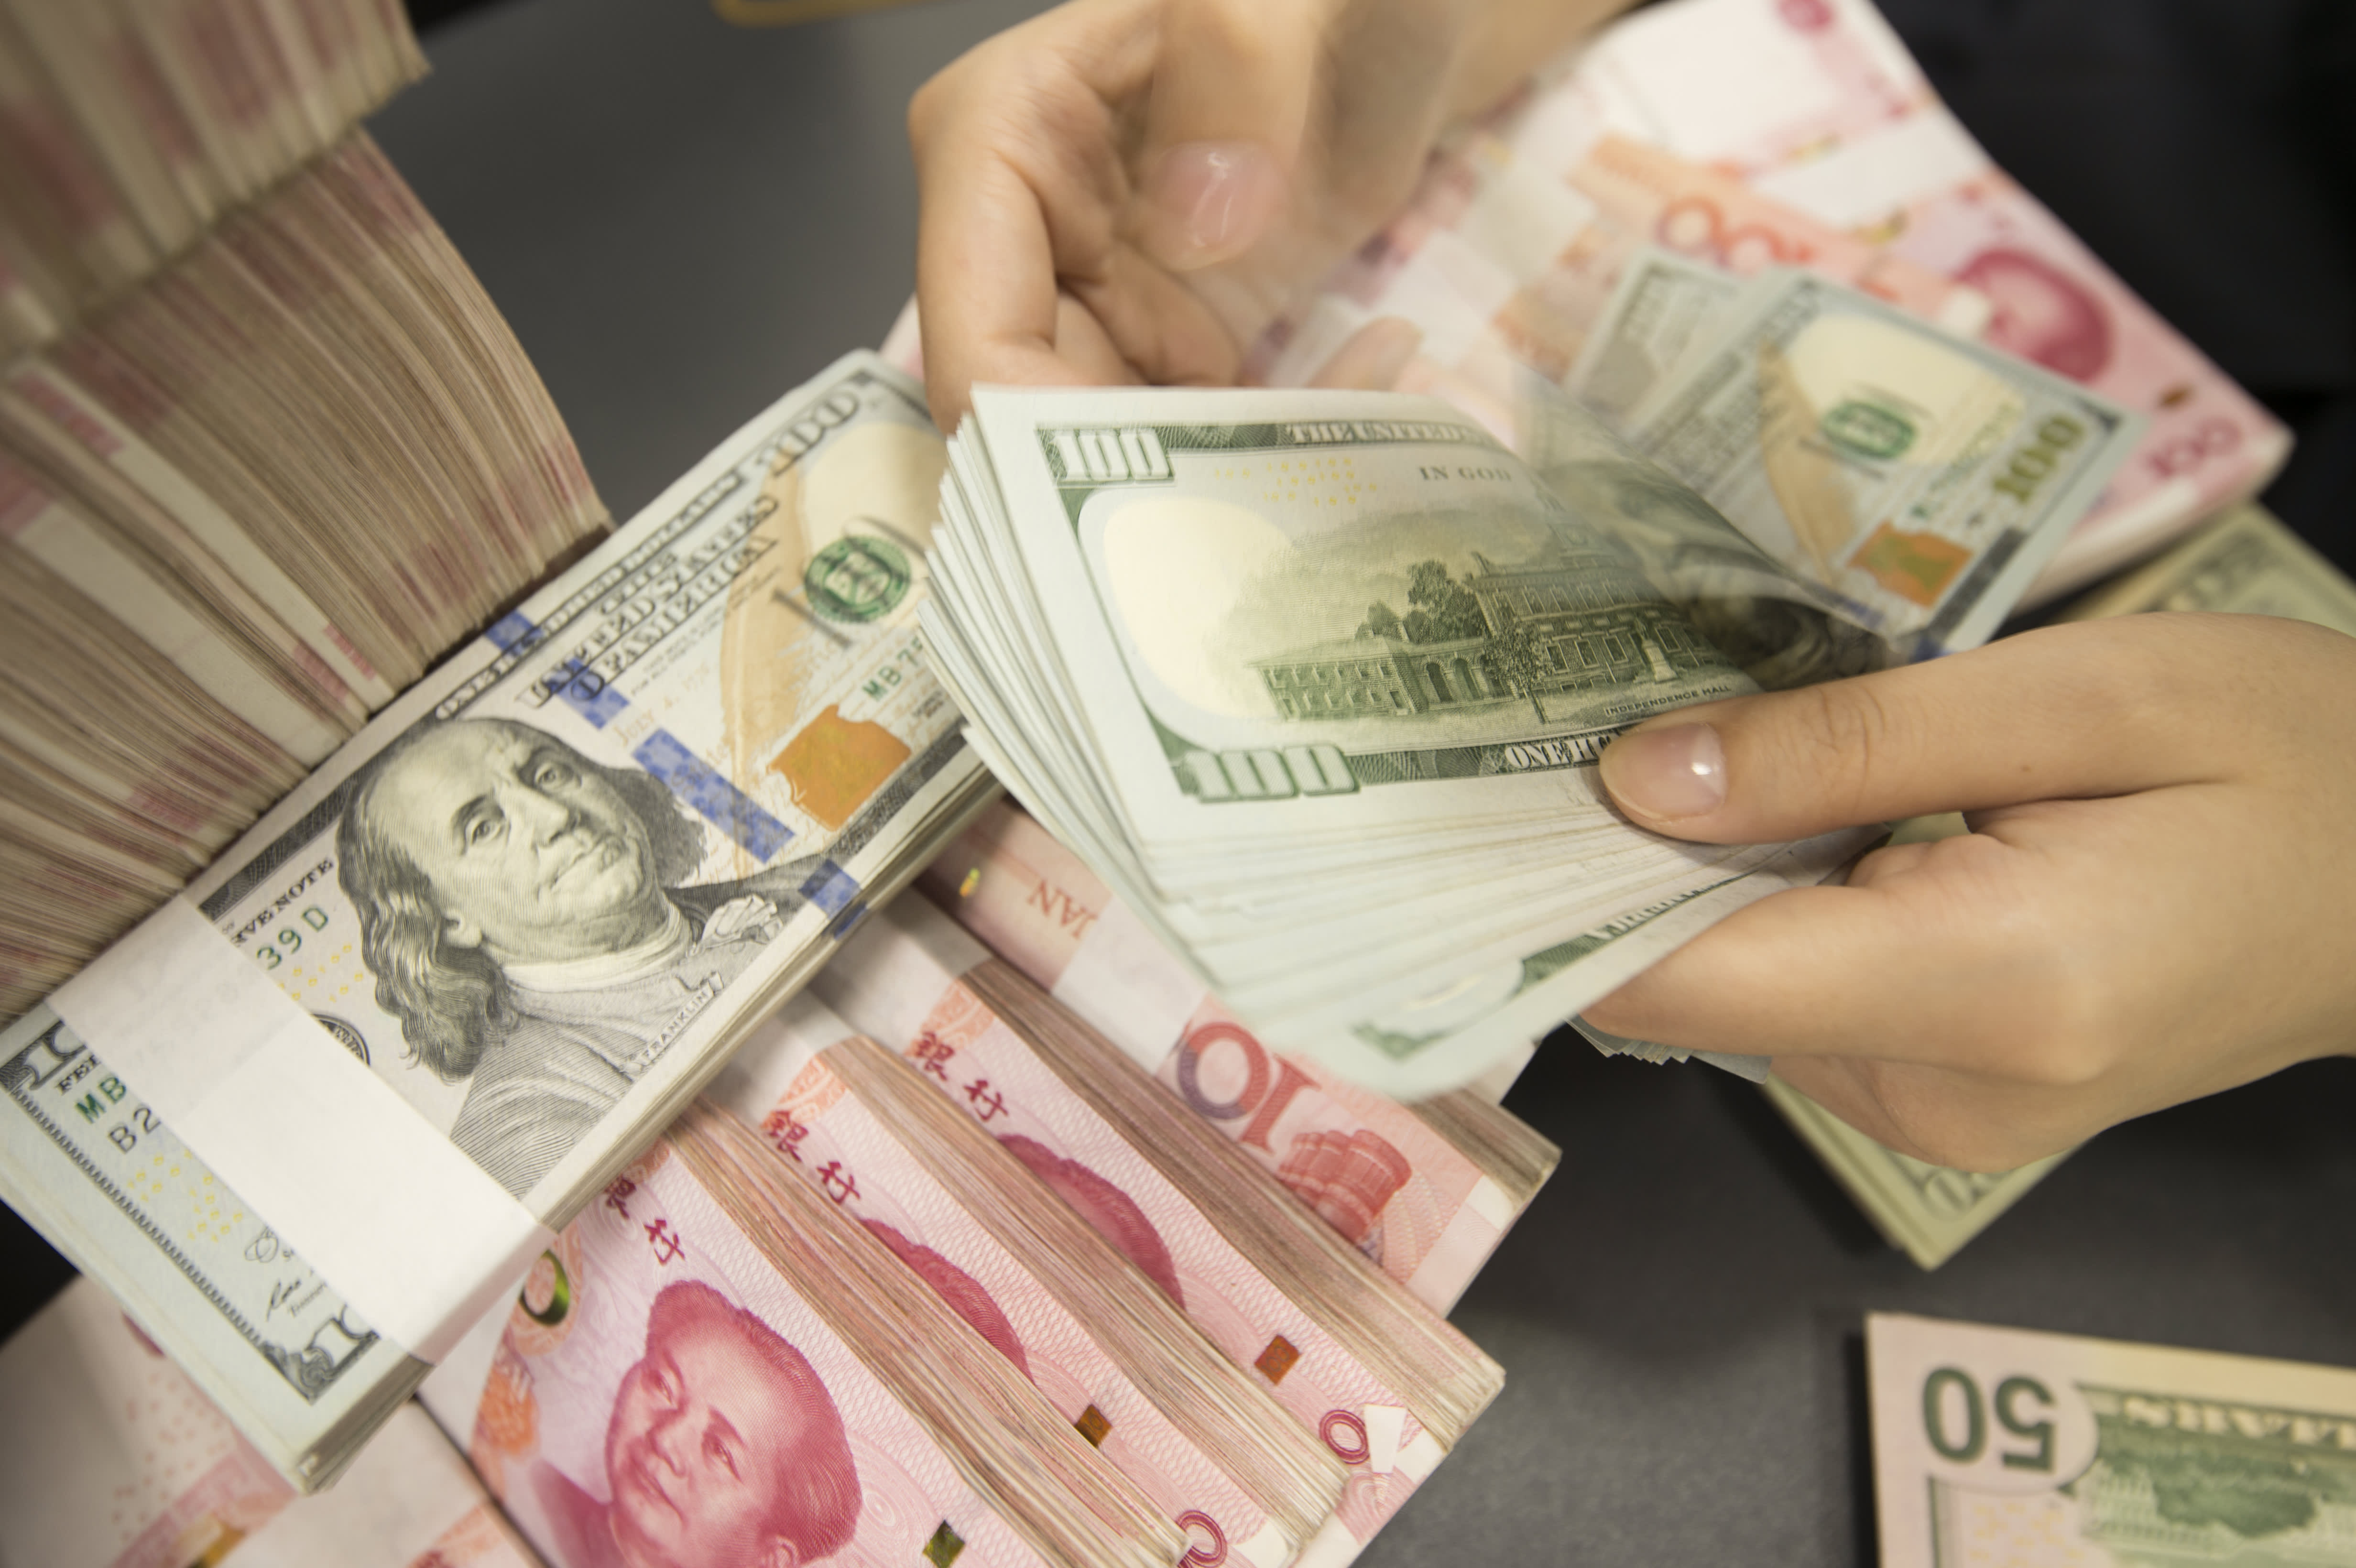 The yuan won't unseat the dollar soon — but it could grow in prominence if China dominates in tech and trade